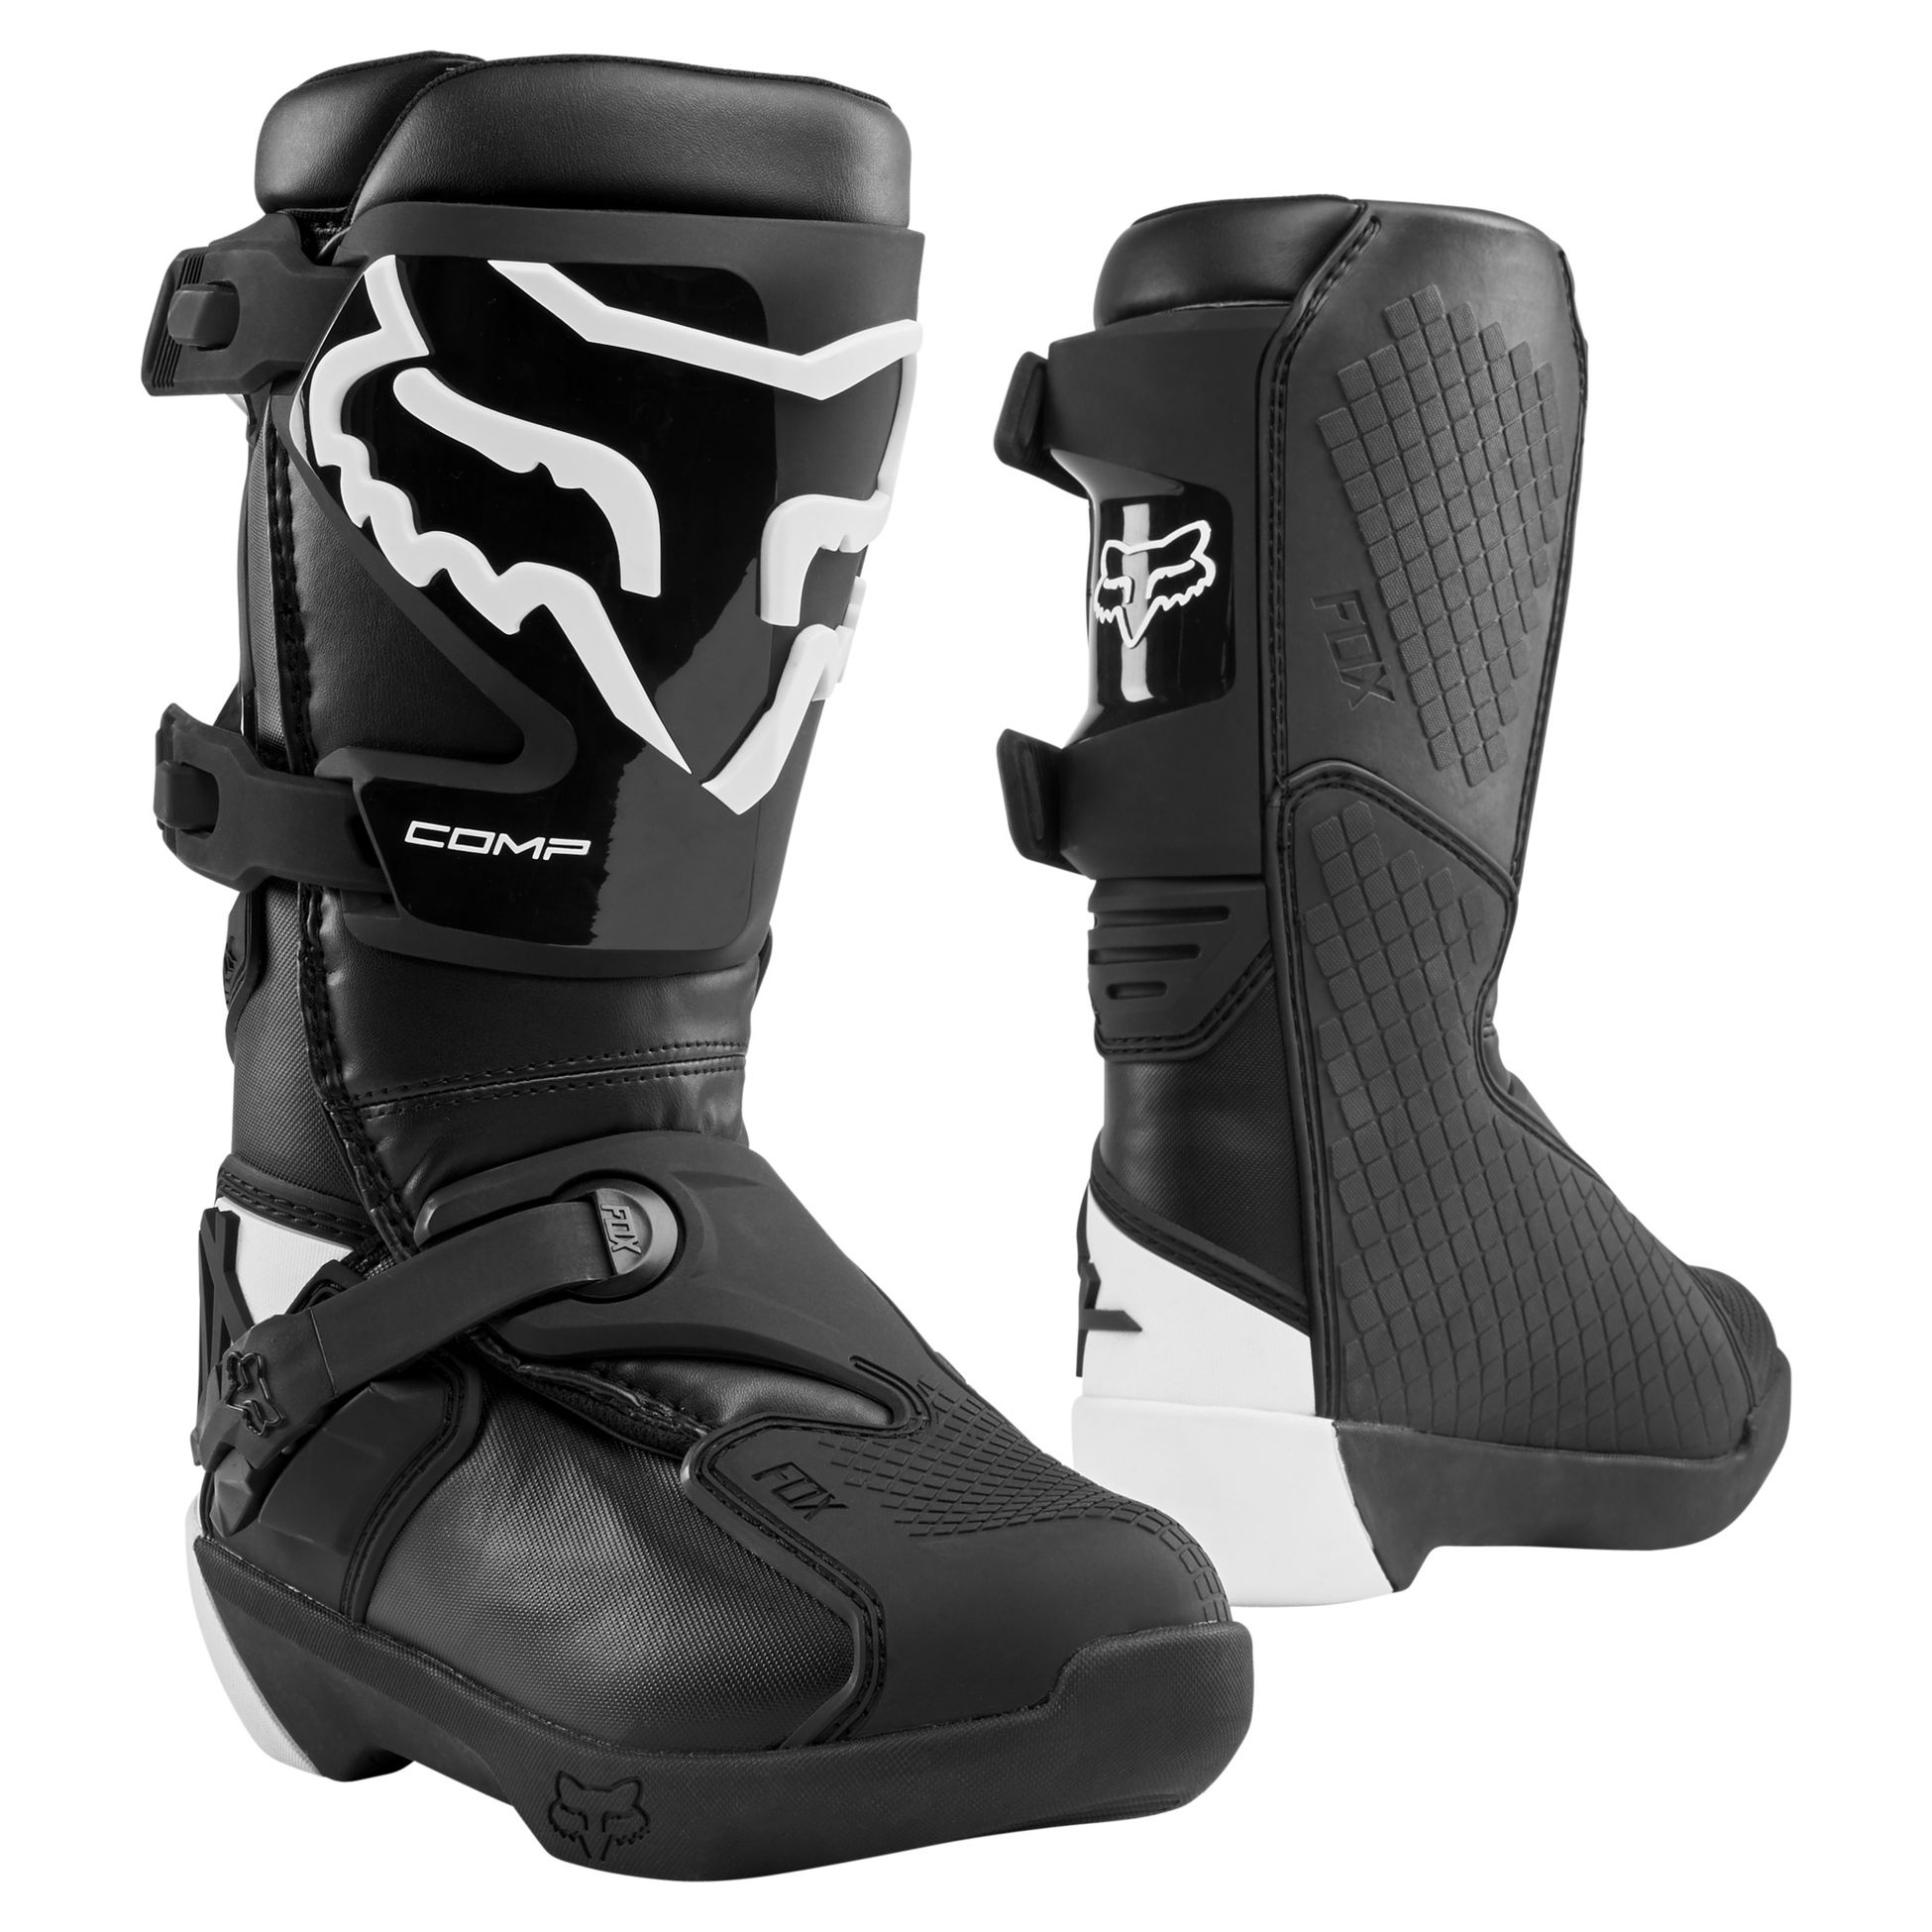 Youth 1-13 White//Black Alpinestars TECH 3S Youth Off-Road Motorcross Boots